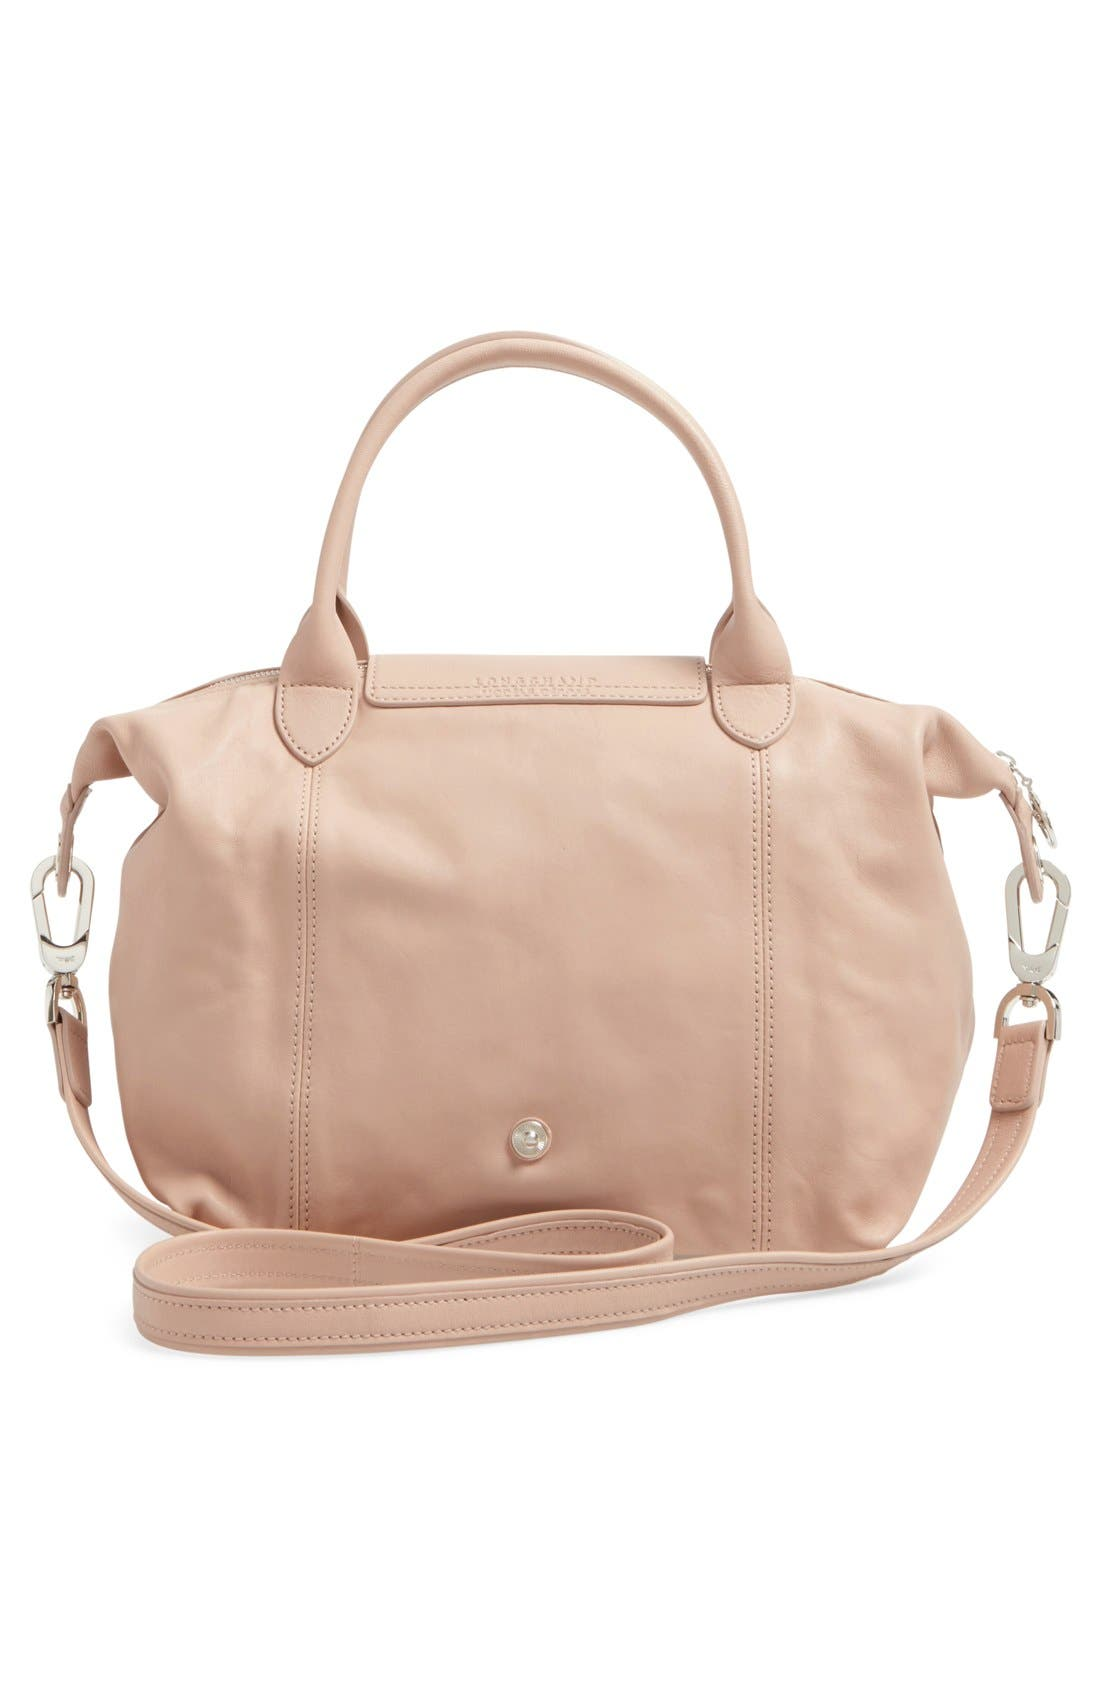 Small 'Le Pliage Cuir' Leather Top Handle Tote,                             Alternate thumbnail 48, color,